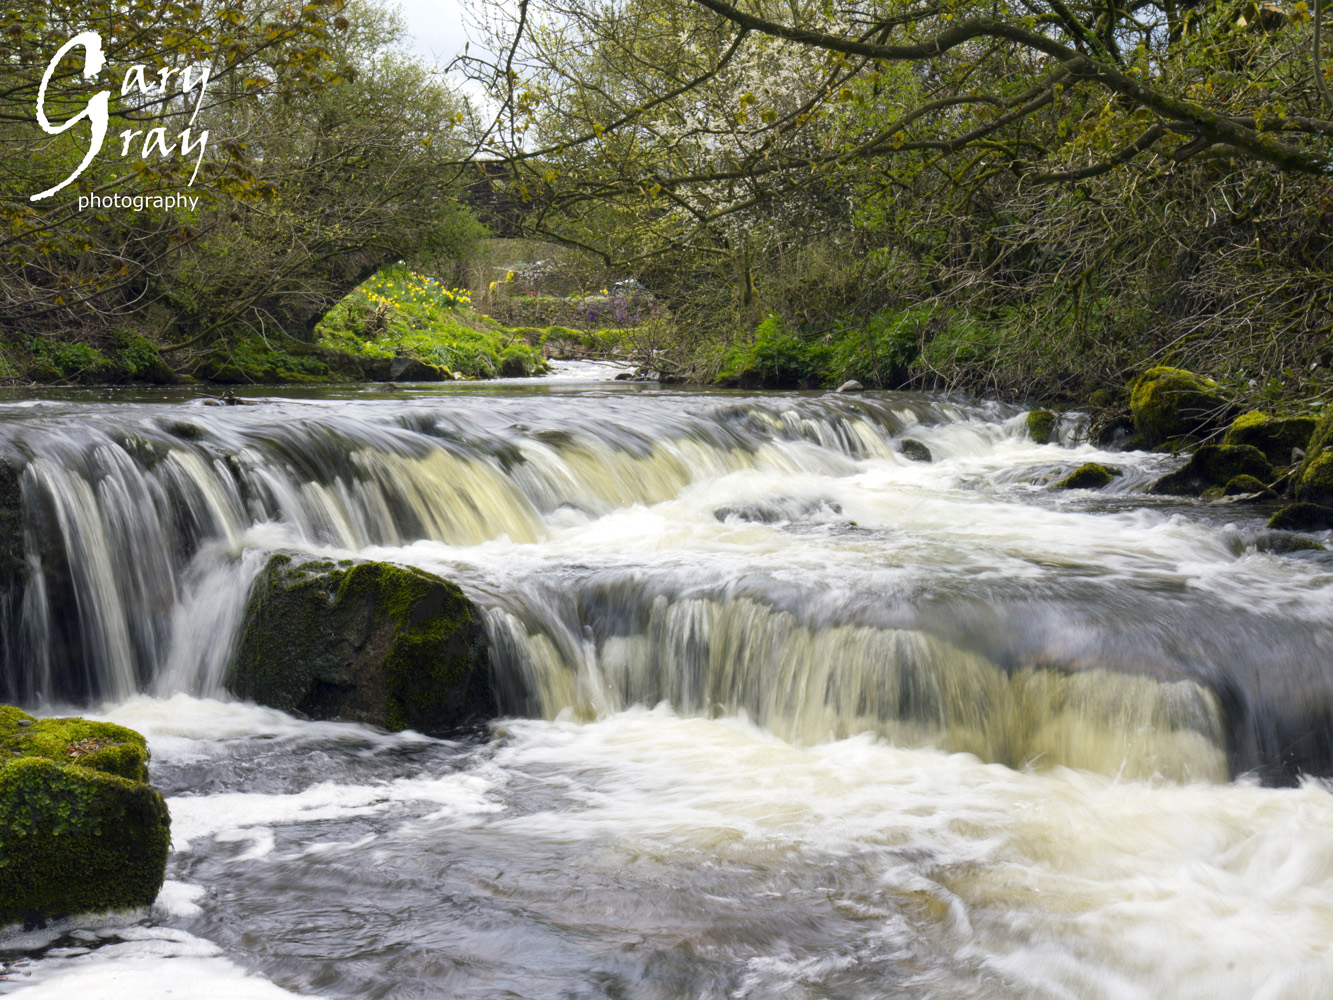 Calder Beck waterfalls